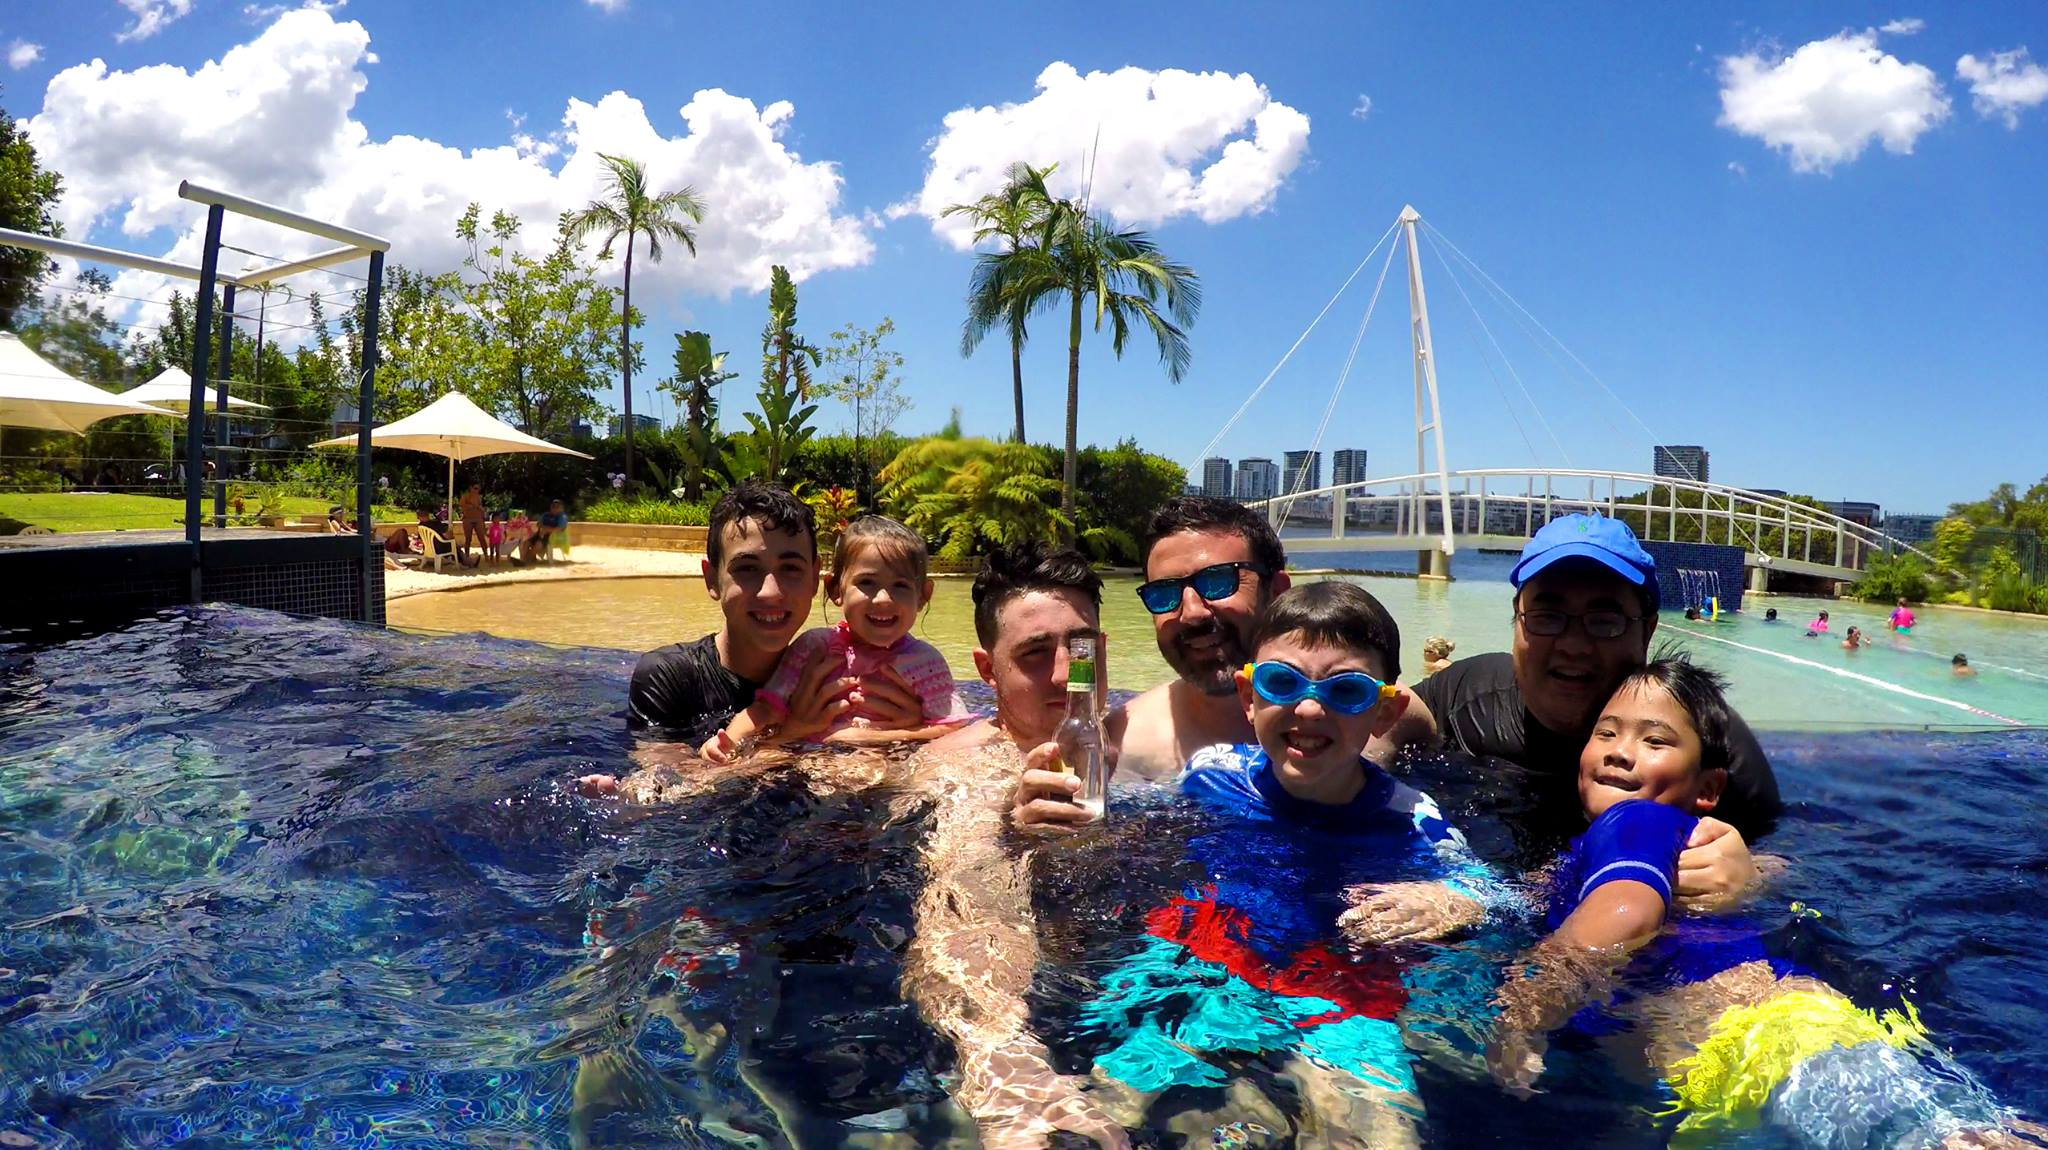 Happy Boxing Day Test lunch break! Lunch and a swim with the Cu's